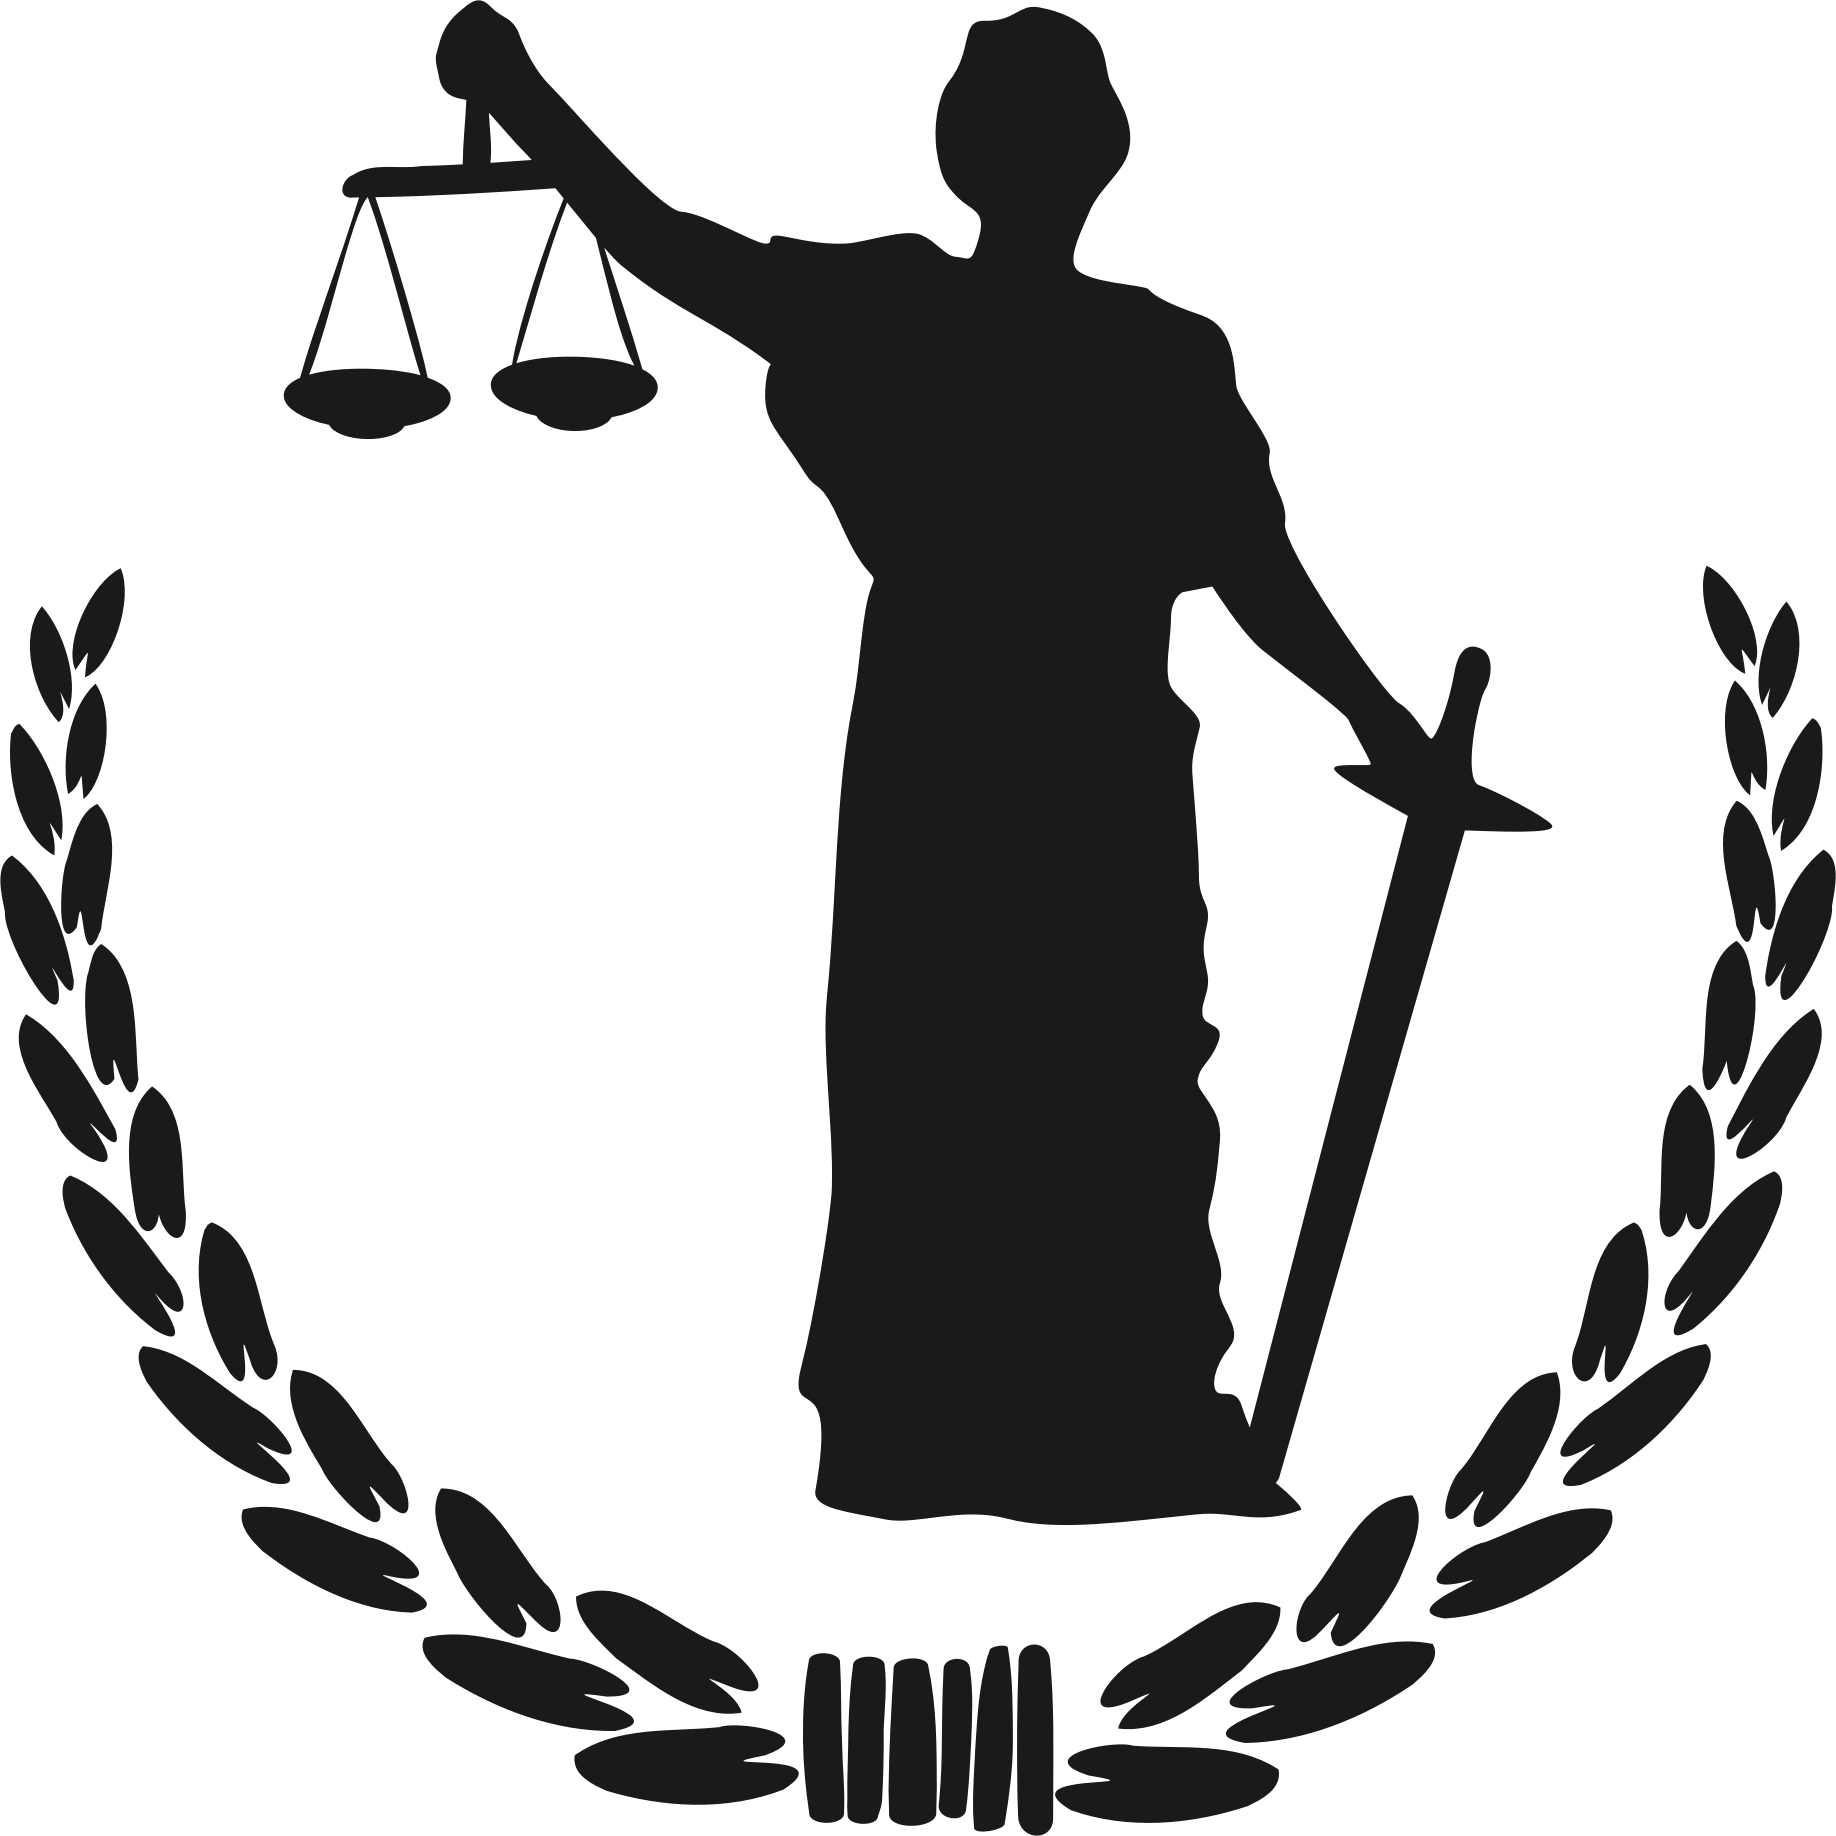 Justice vector clipart. Goddess of big image